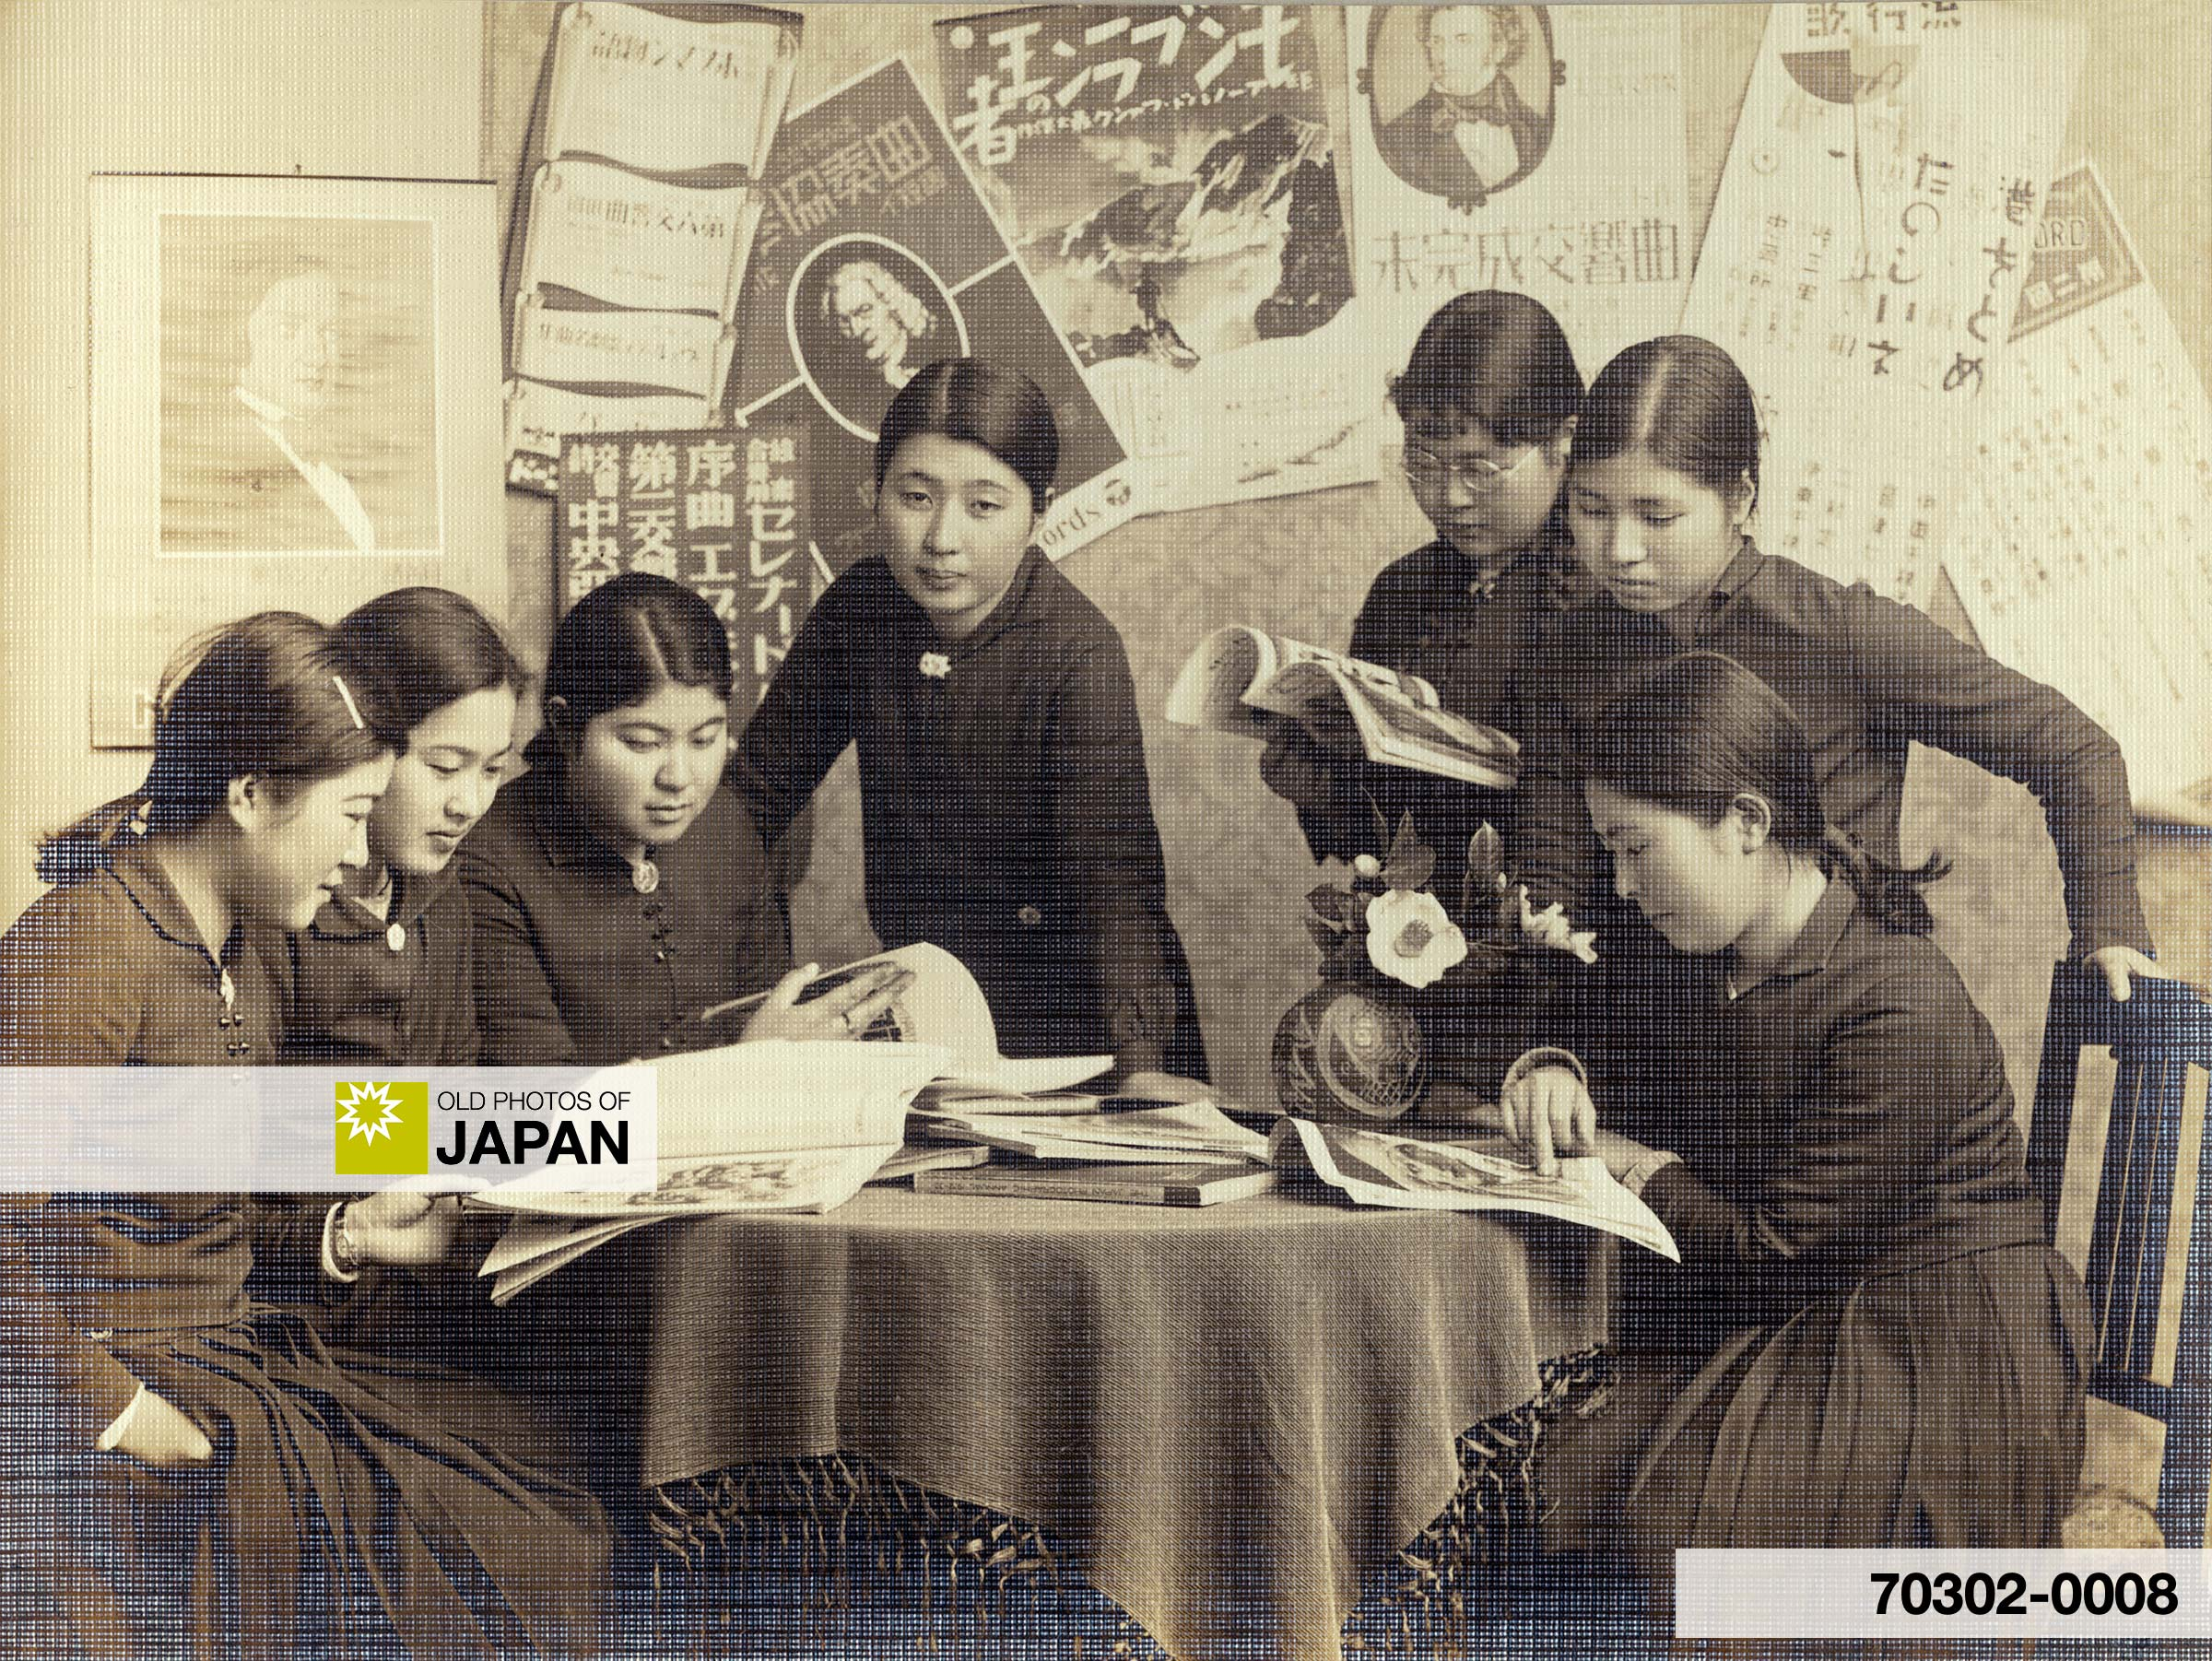 Japanese School Girls Reading Books